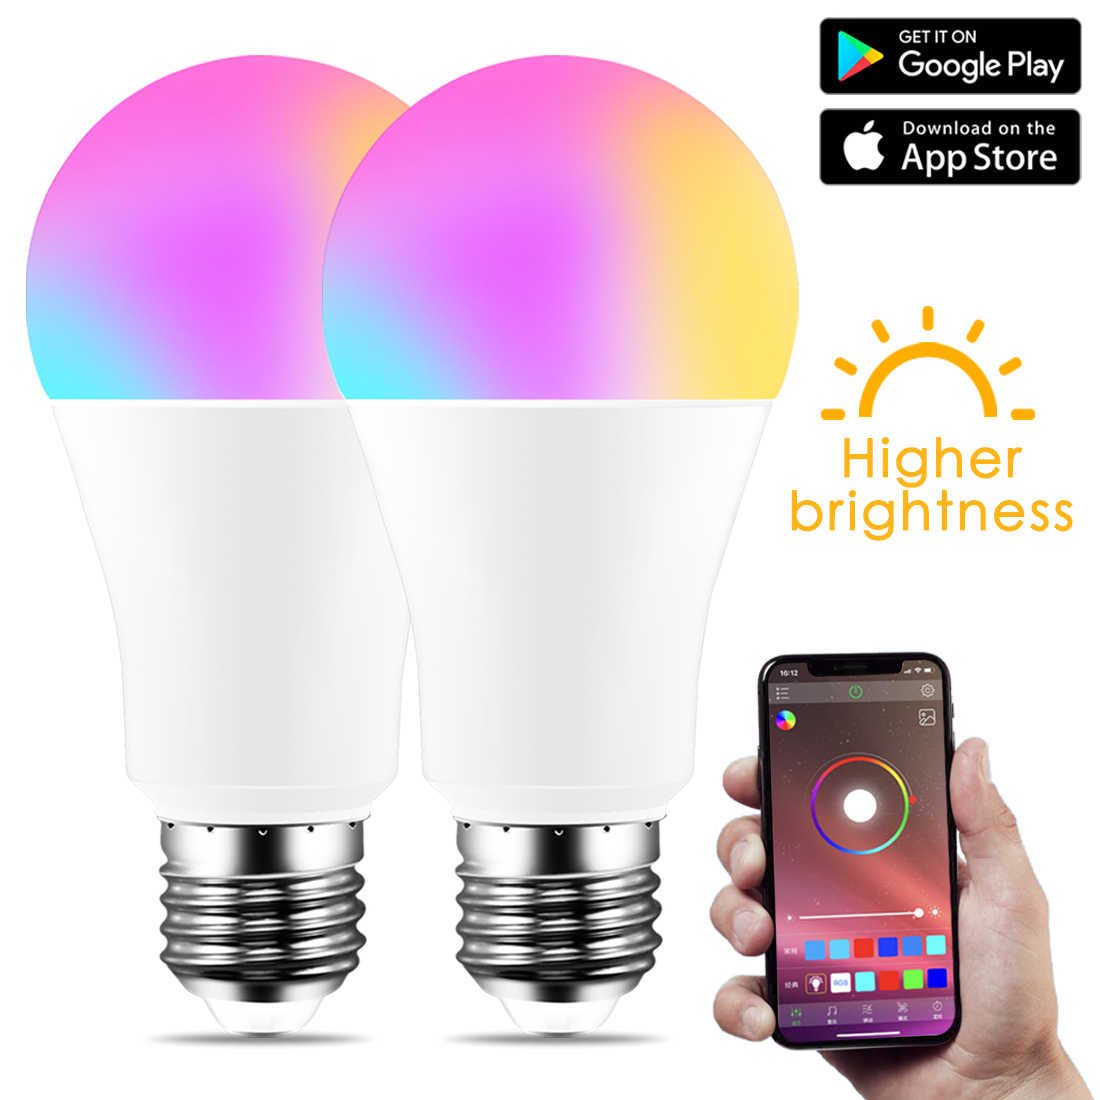 Nieuwe Draadloze Bluetooth 4.0 Smart Lamp Home Verlichting Lamp 10W E27 Magic Rgb + W Led Kleur Veranderen Licht lamp Dimbare Ios/Android